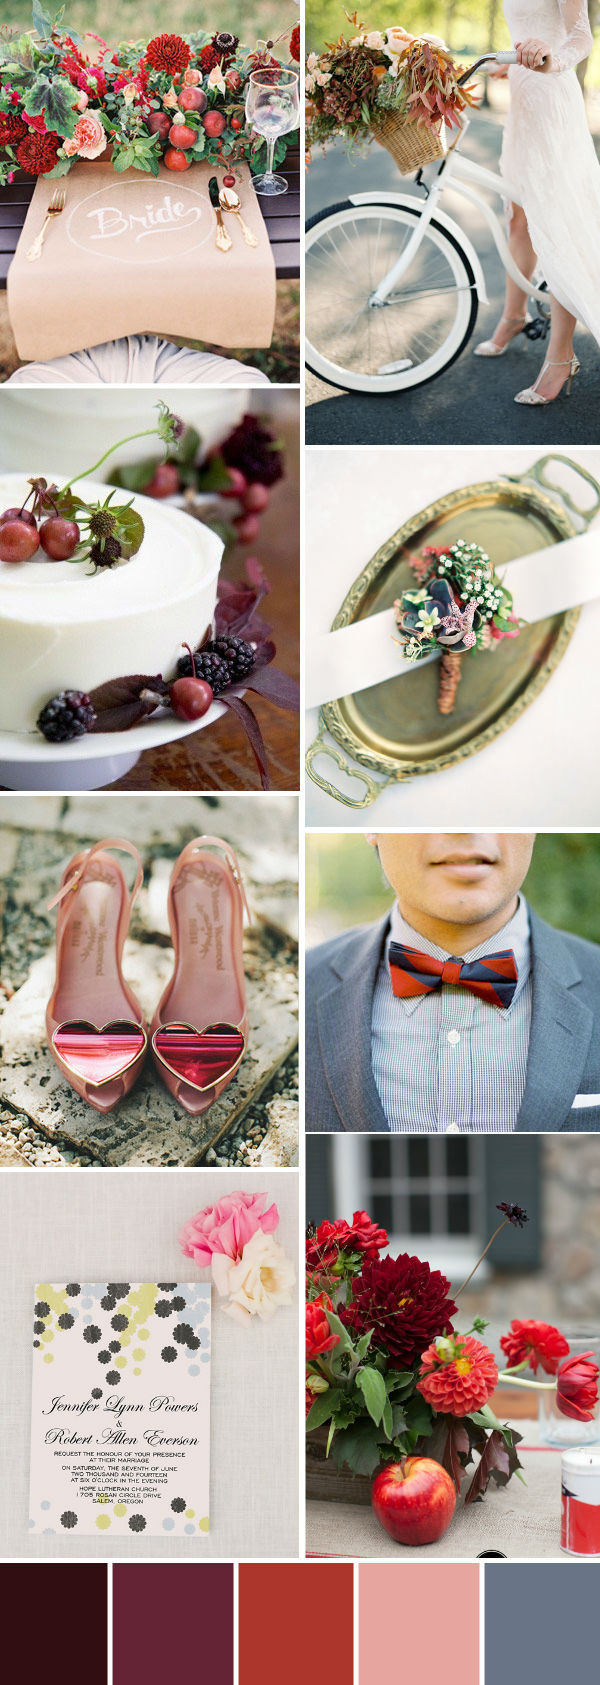 bright fall berries wedding colour palettes